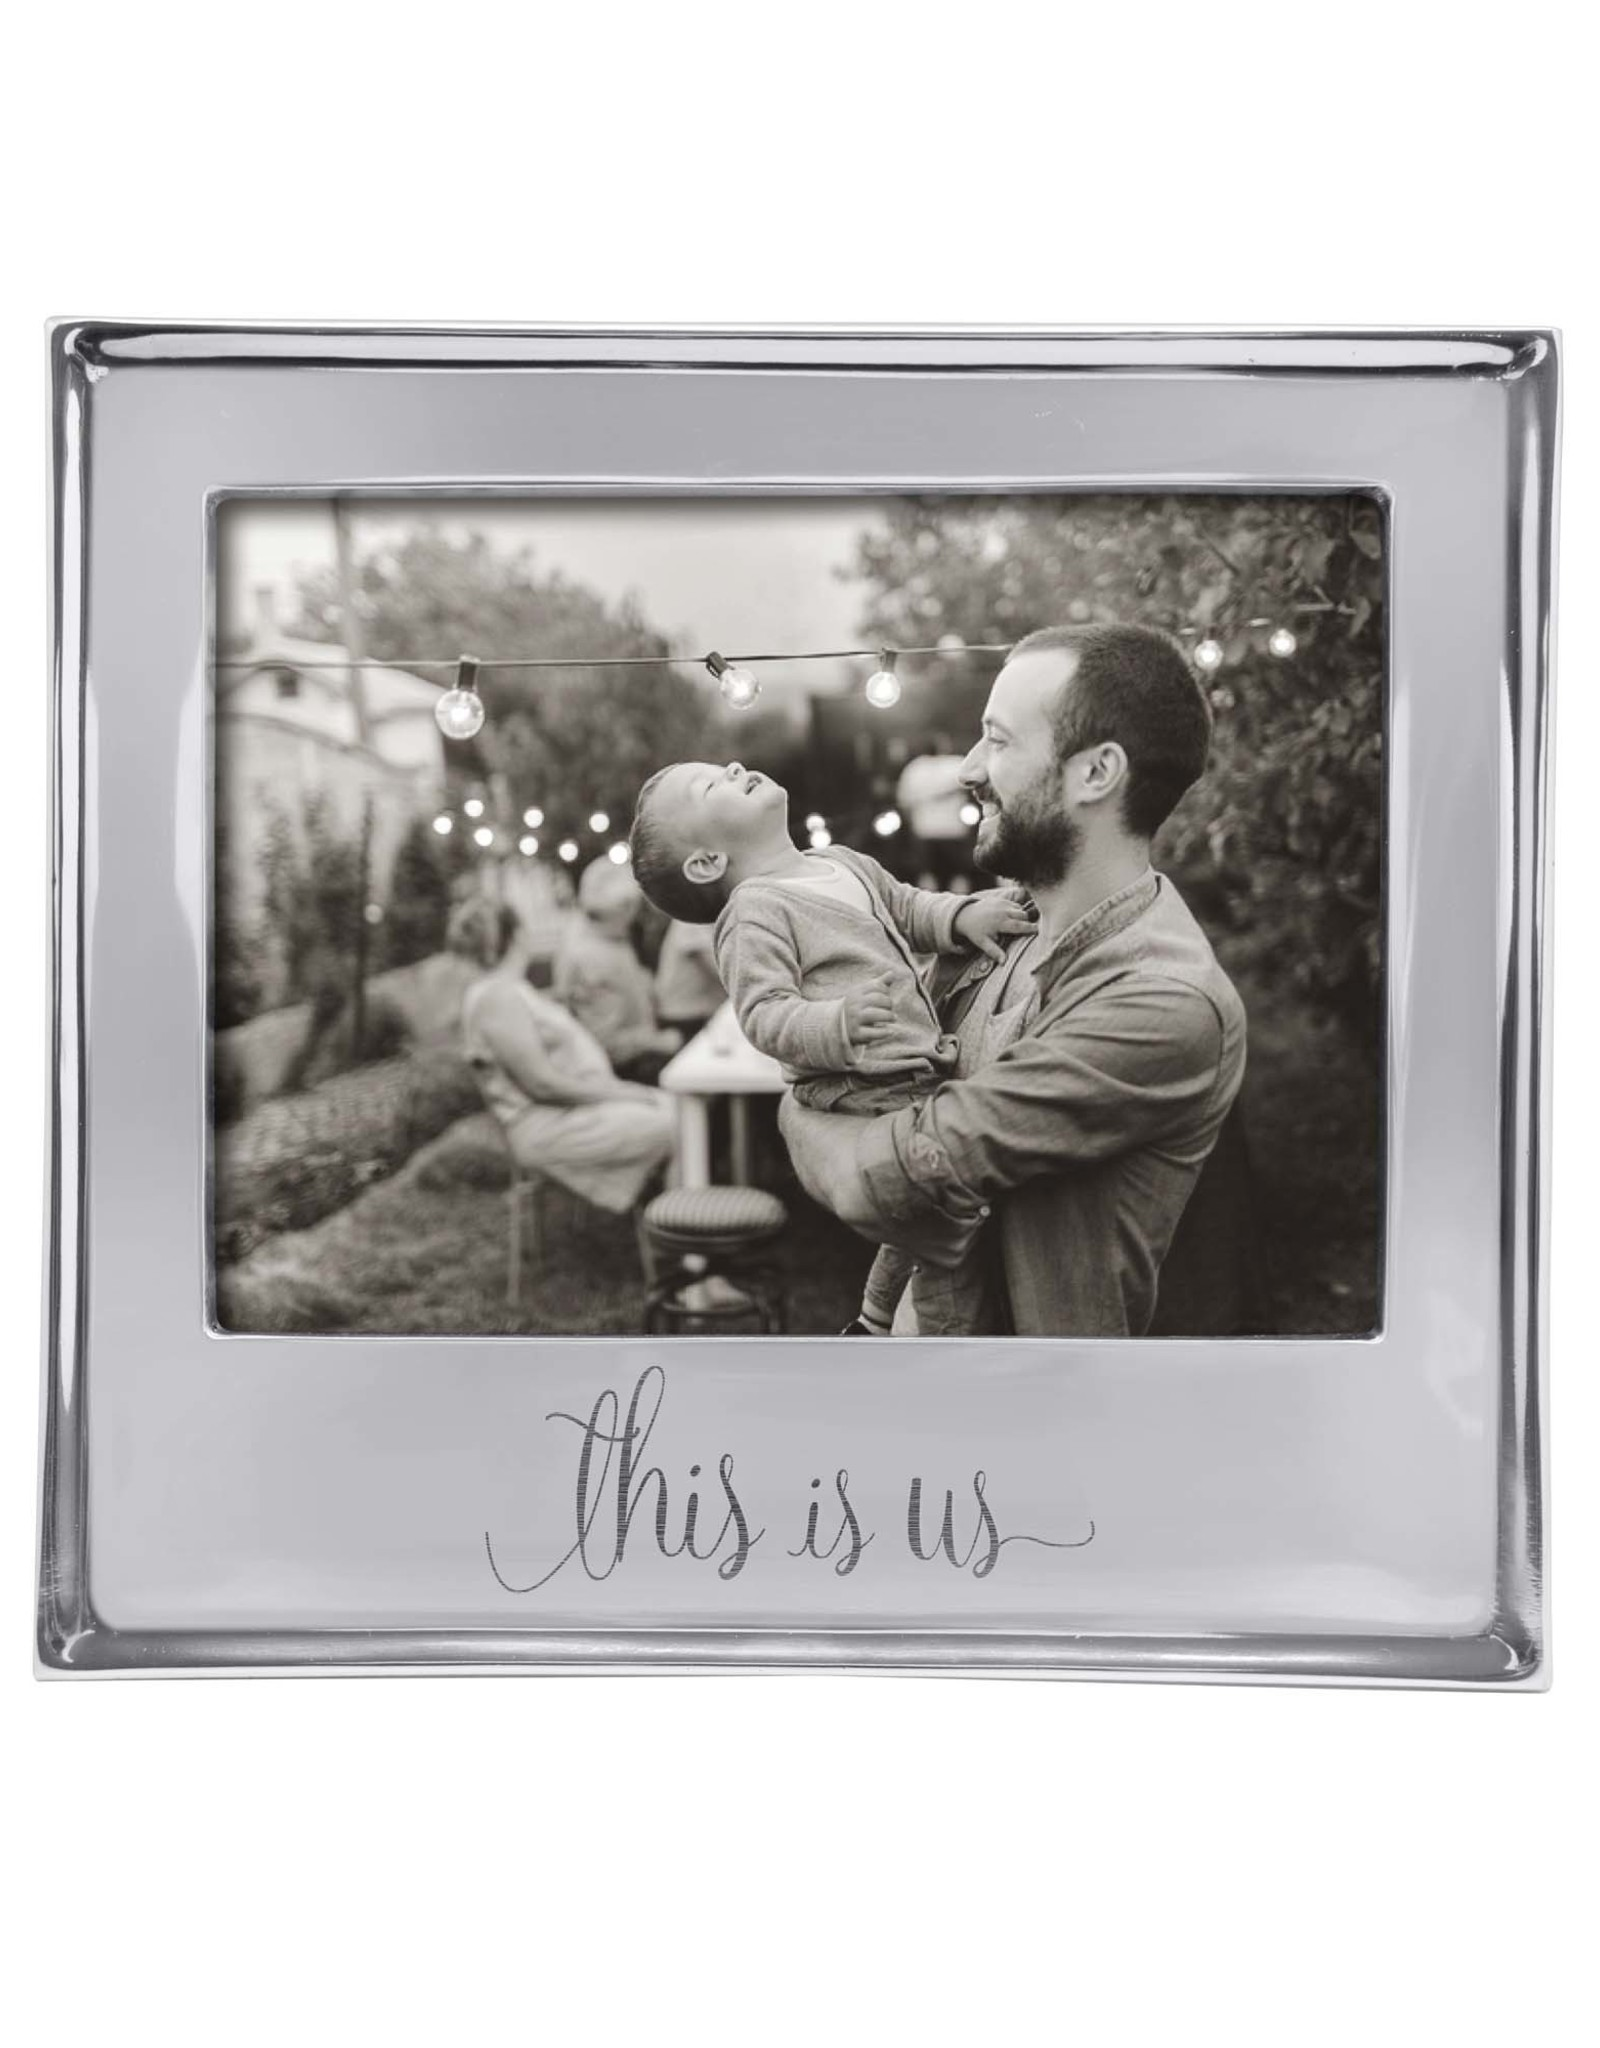 Mariposa Frame Signature This is us 5x7